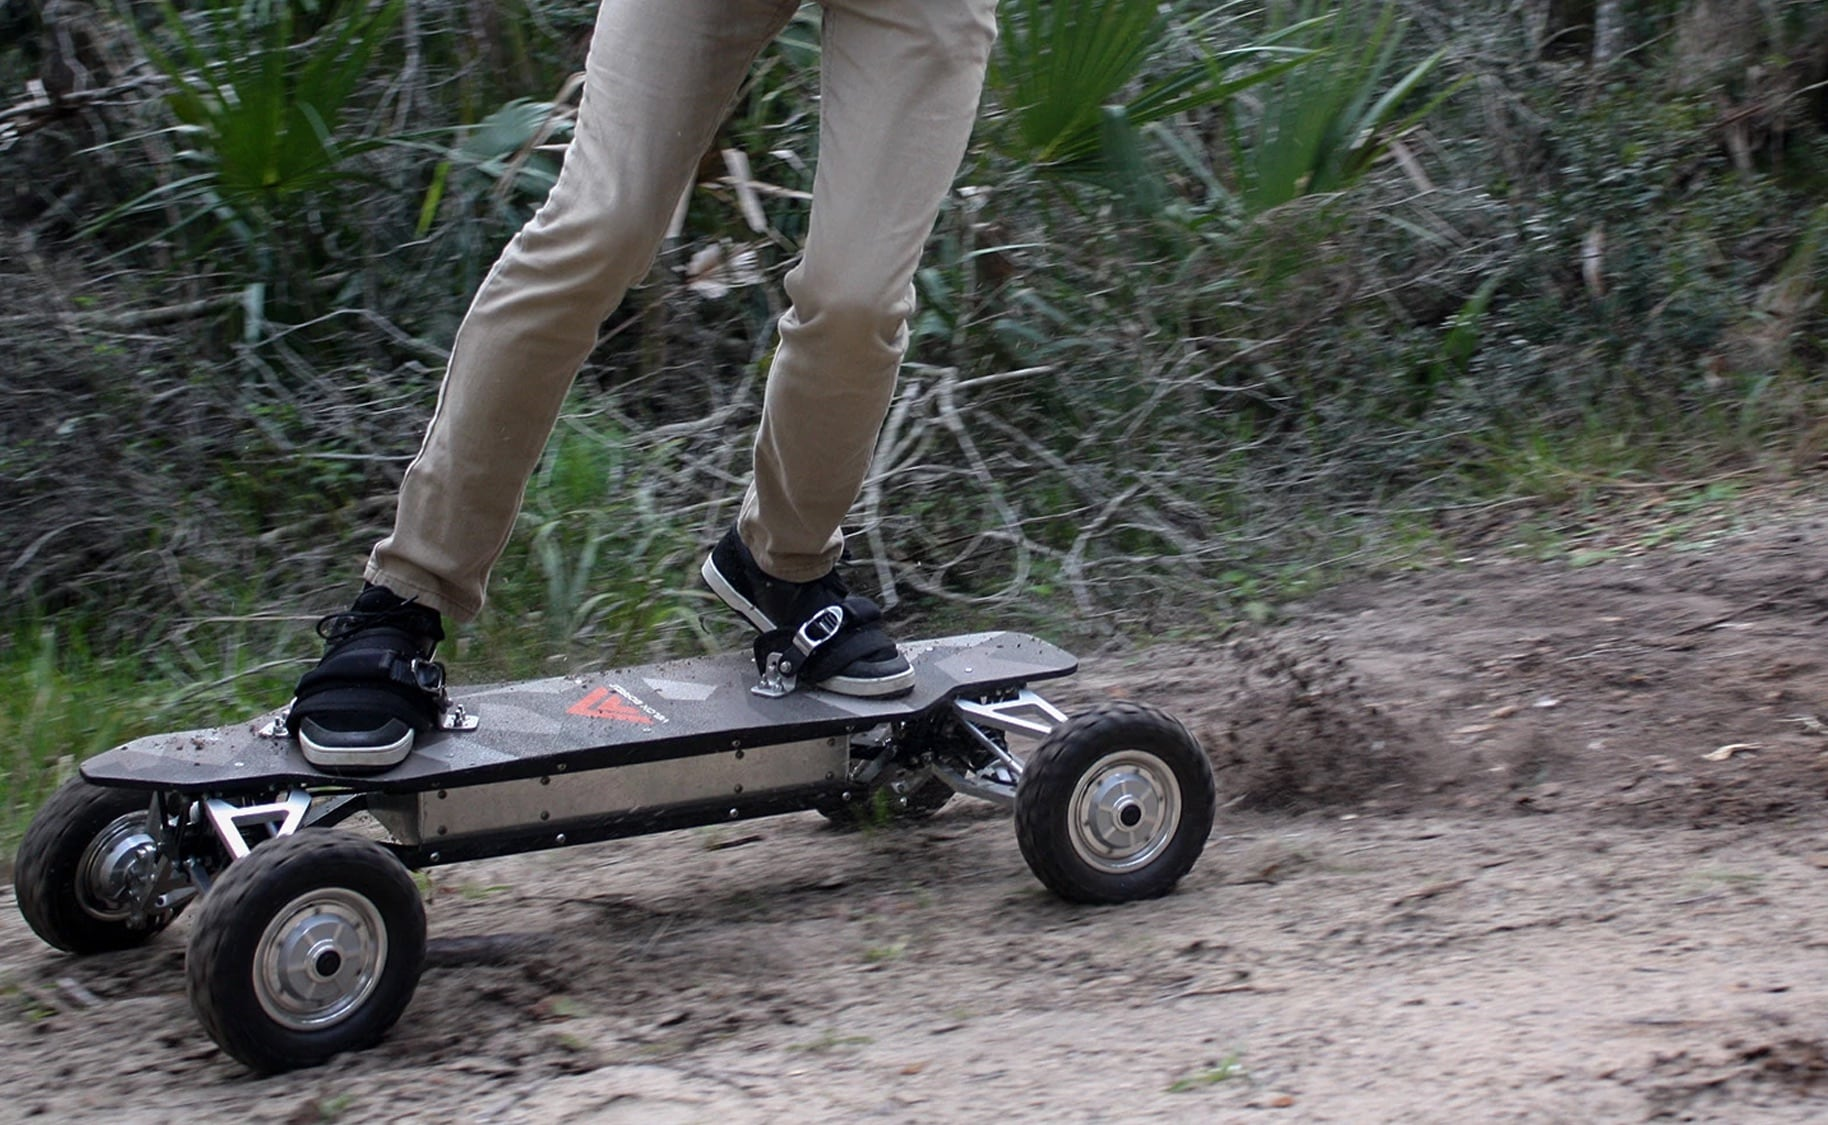 Velox Off-Road Electric Skateboards give you full suspension for every jump